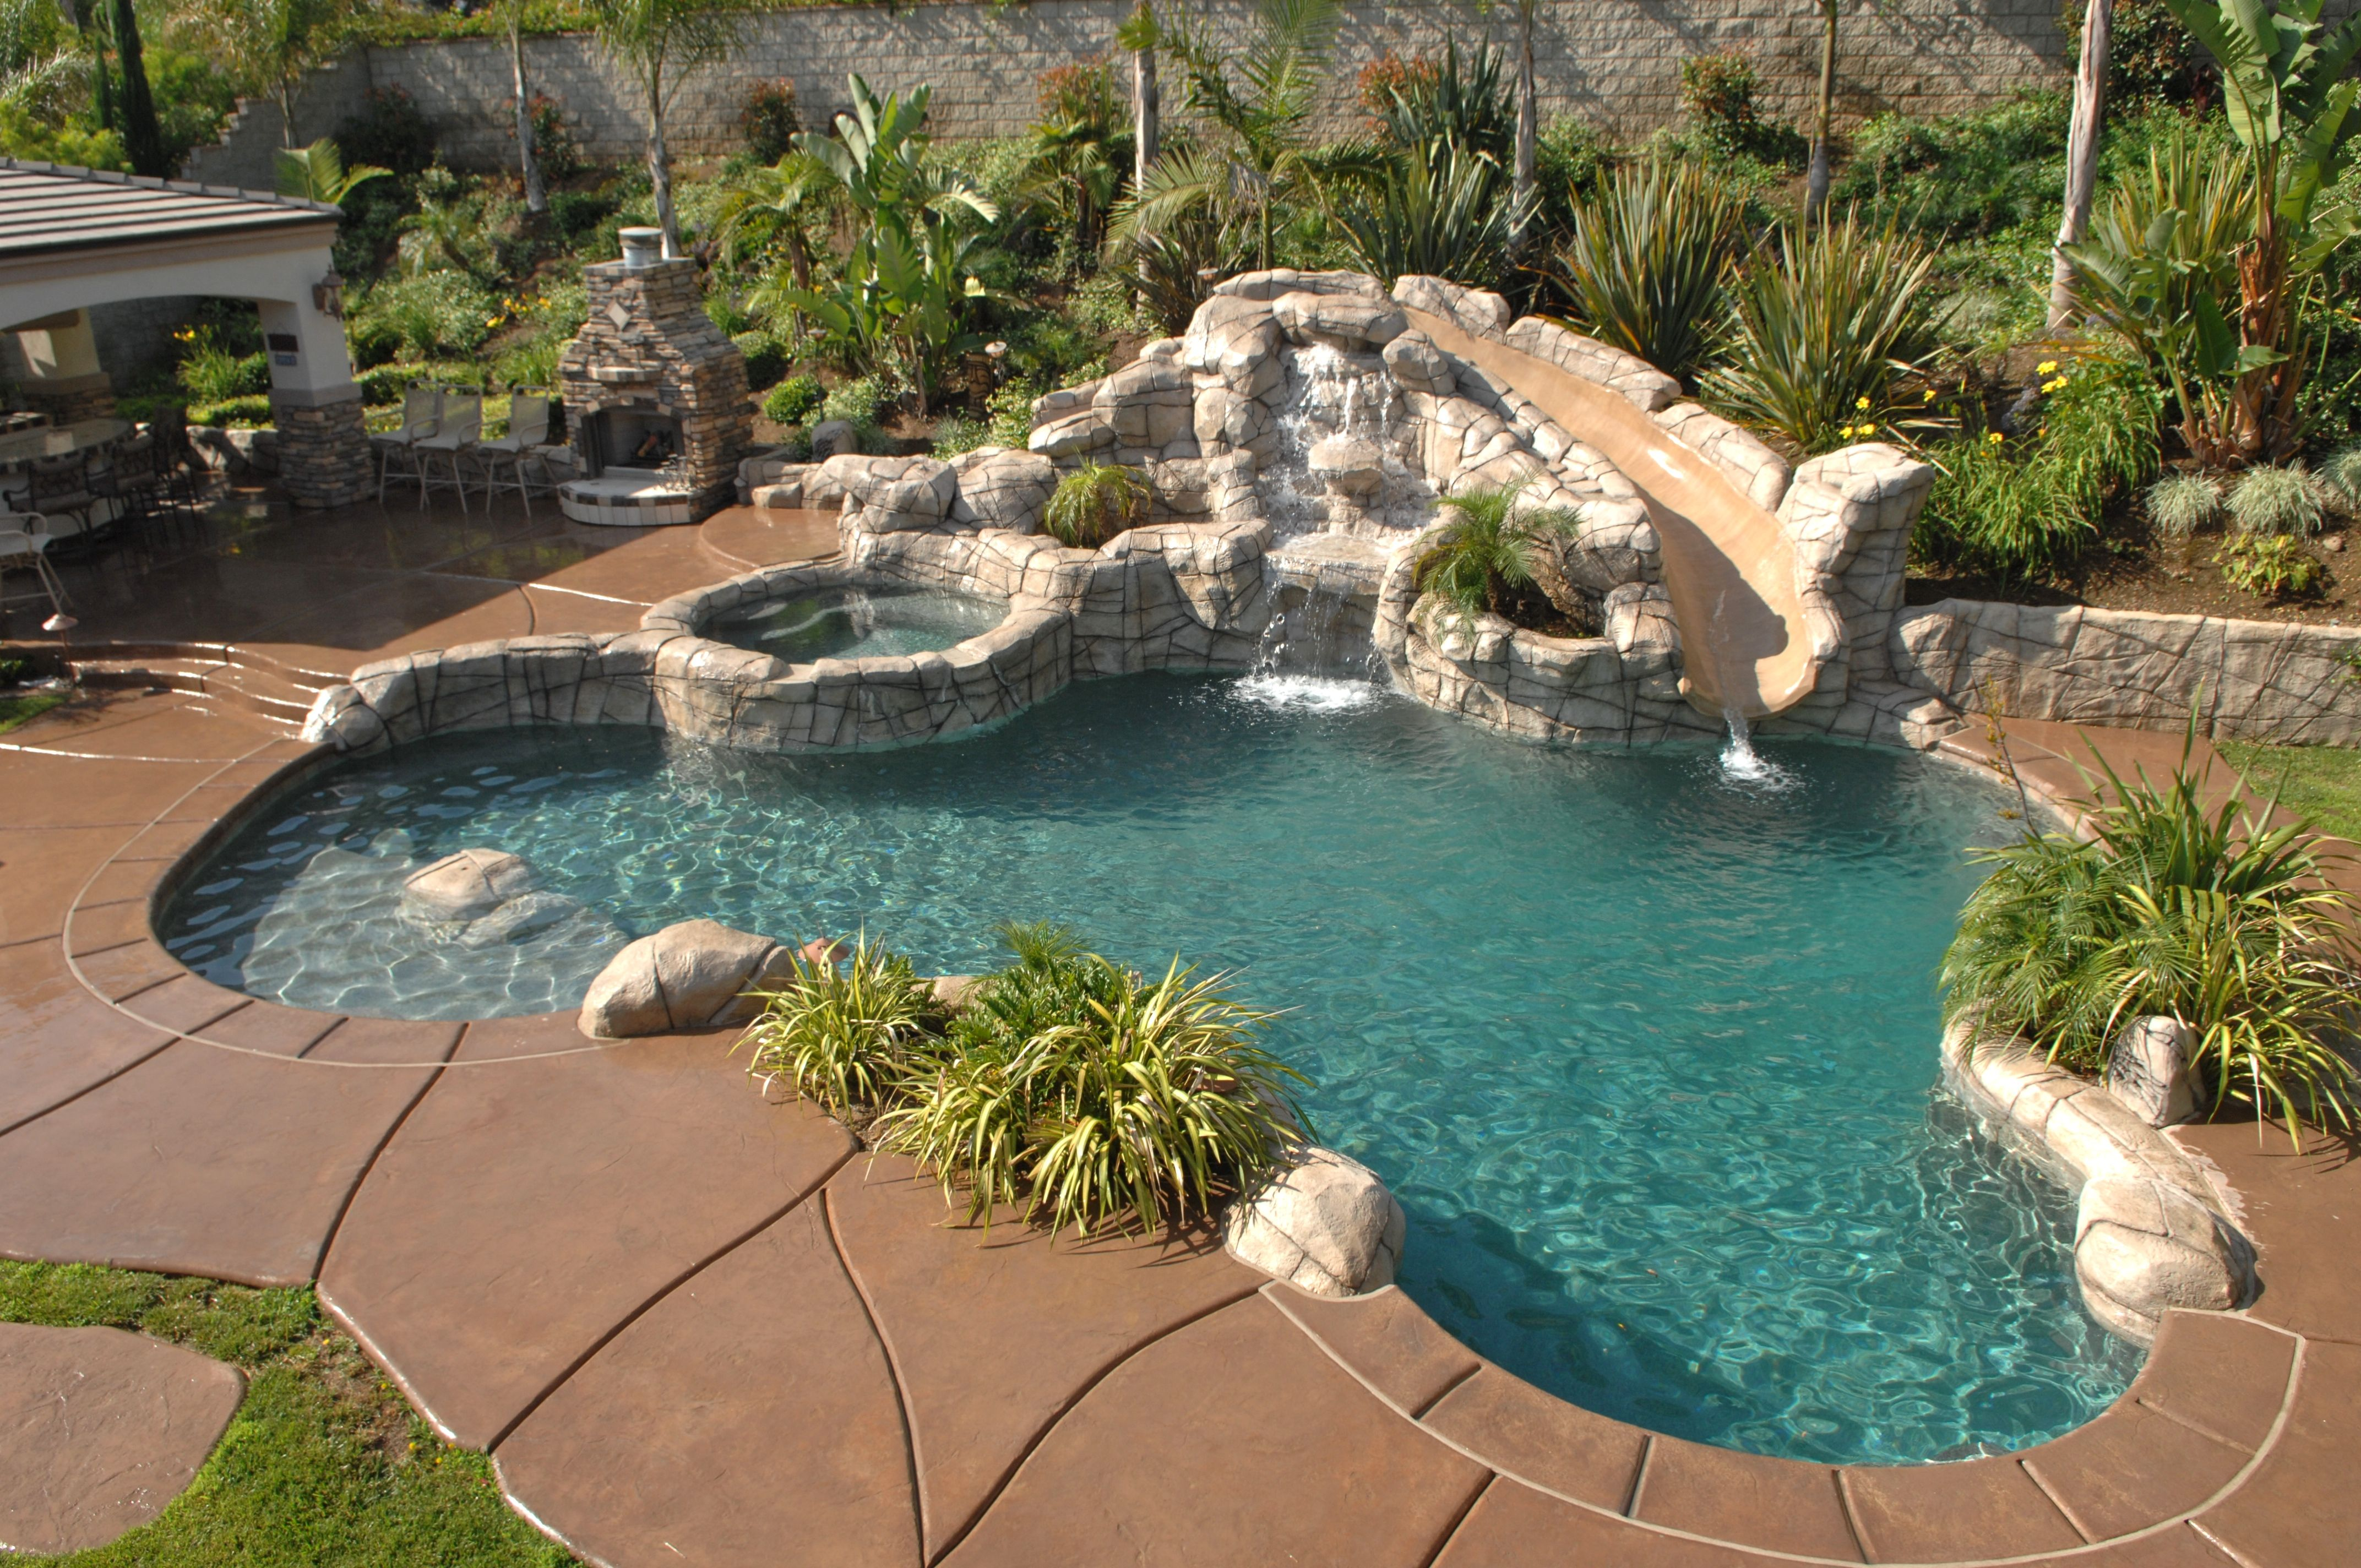 Revitalize Your Eyes With These Luxury Swimming Pool Designs Luxury Swimming Pool Swimm Luxury Swimming Pools Backyard Pool Landscaping Swimming Pool House